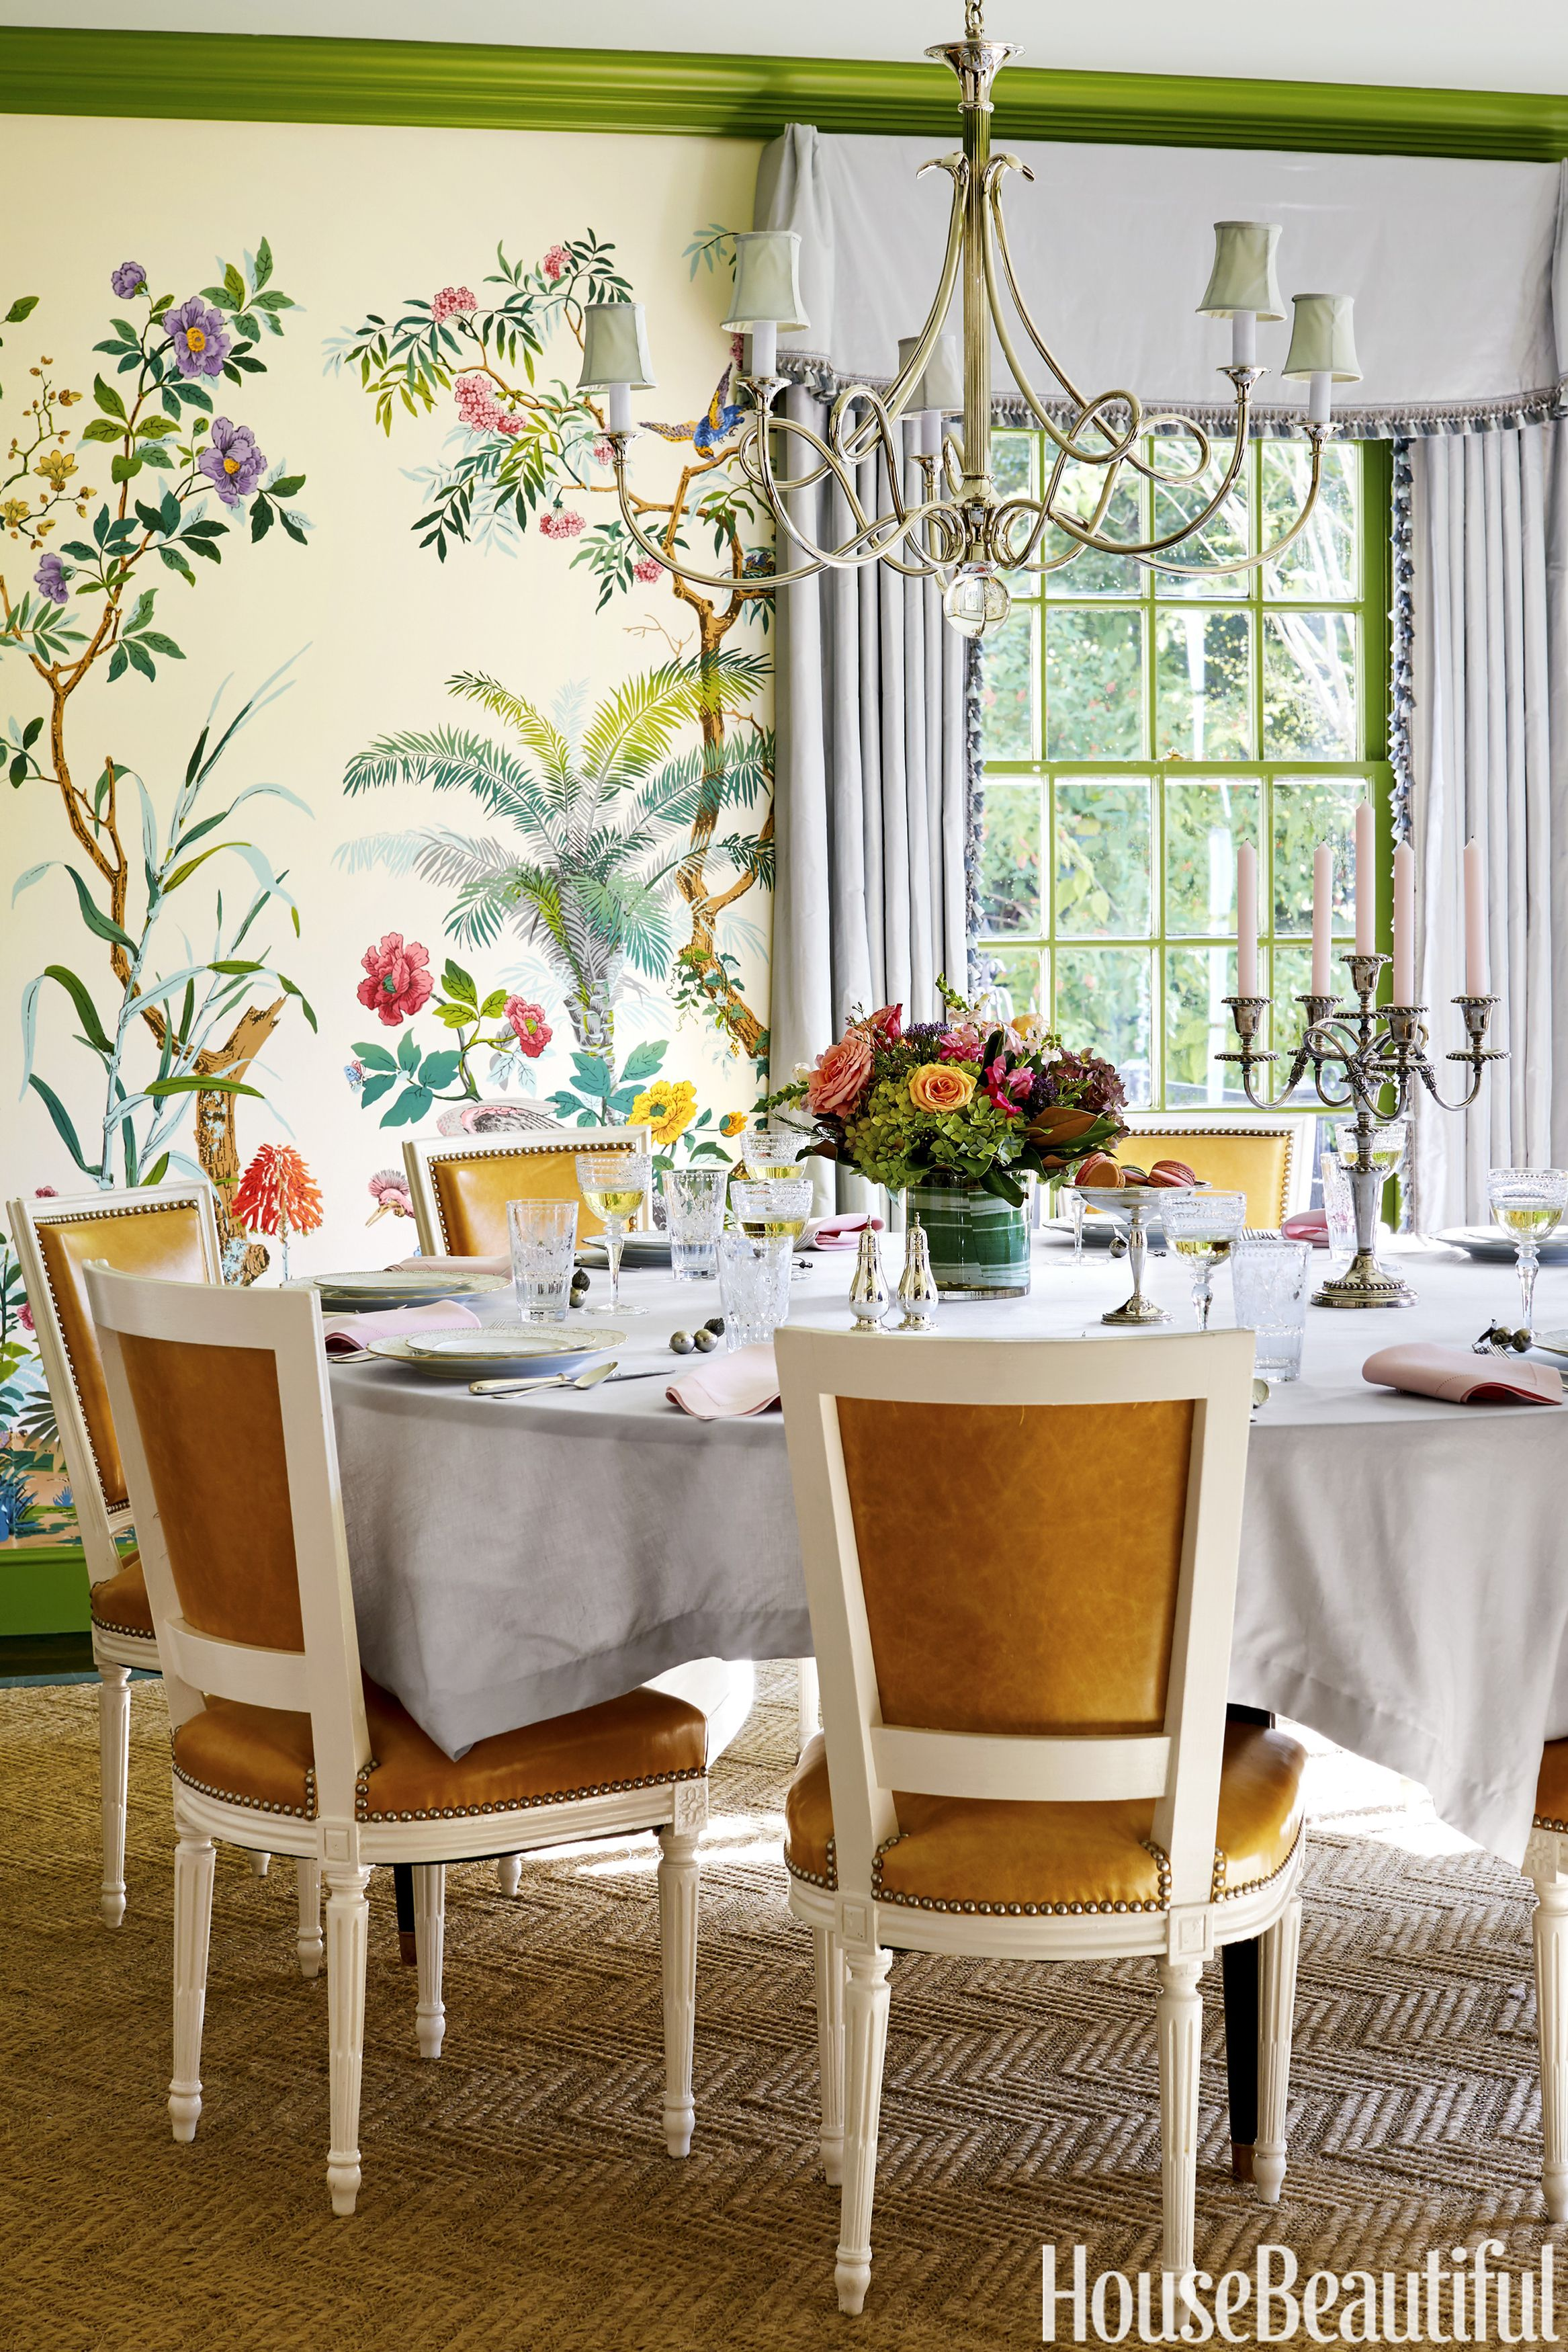 50 Best Dining Room Decorating Ideas  Furniture  Designs and Pictures The dining room now bursts with high octane design  from the Zuber  wallpaper to